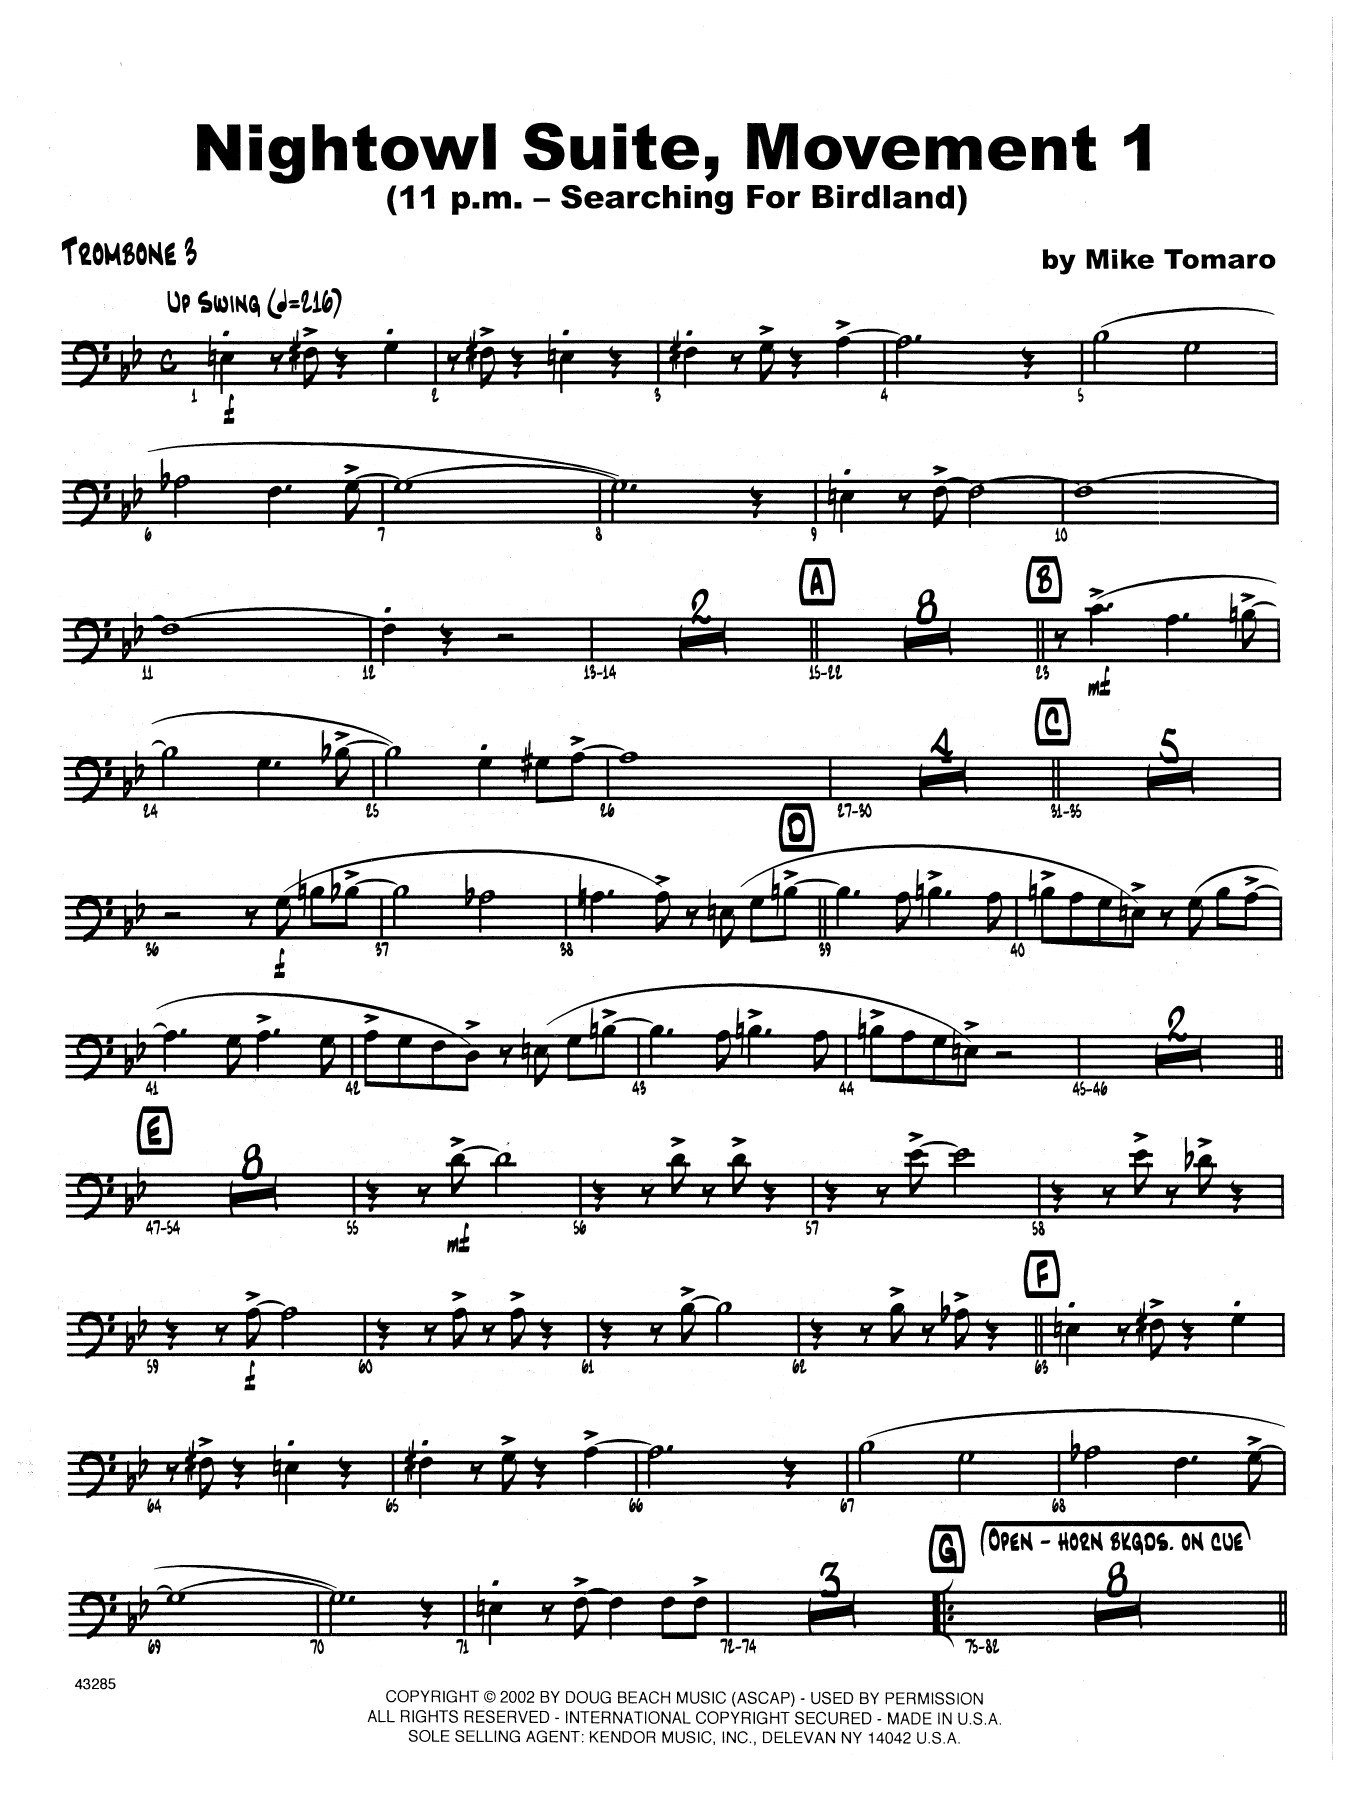 Nightowl Suite, Mvt. 1 - 3rd Trombone